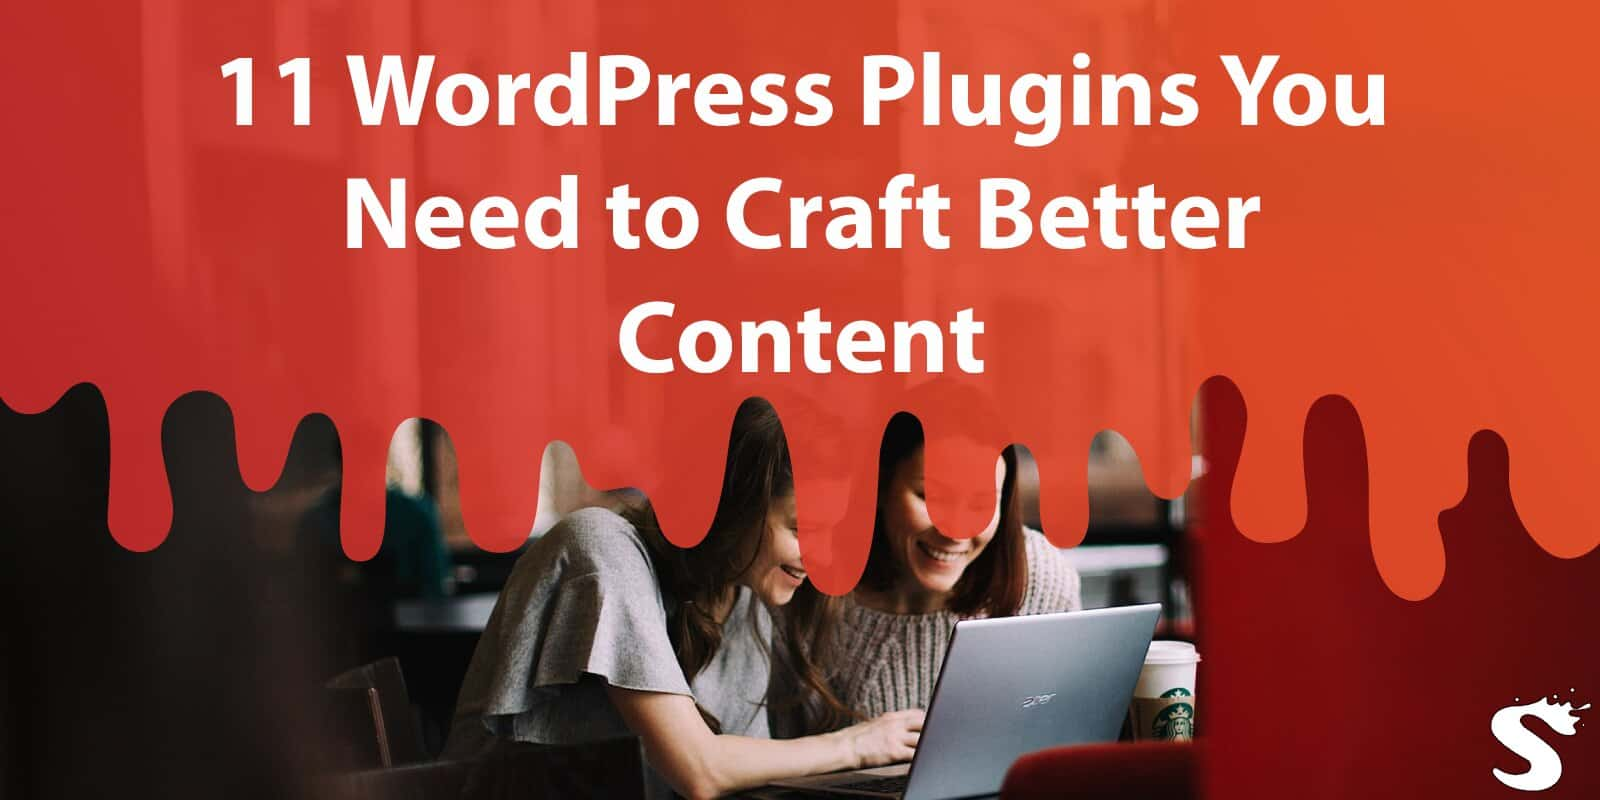 11 WordPress Plugins You Need to Craft Better Content